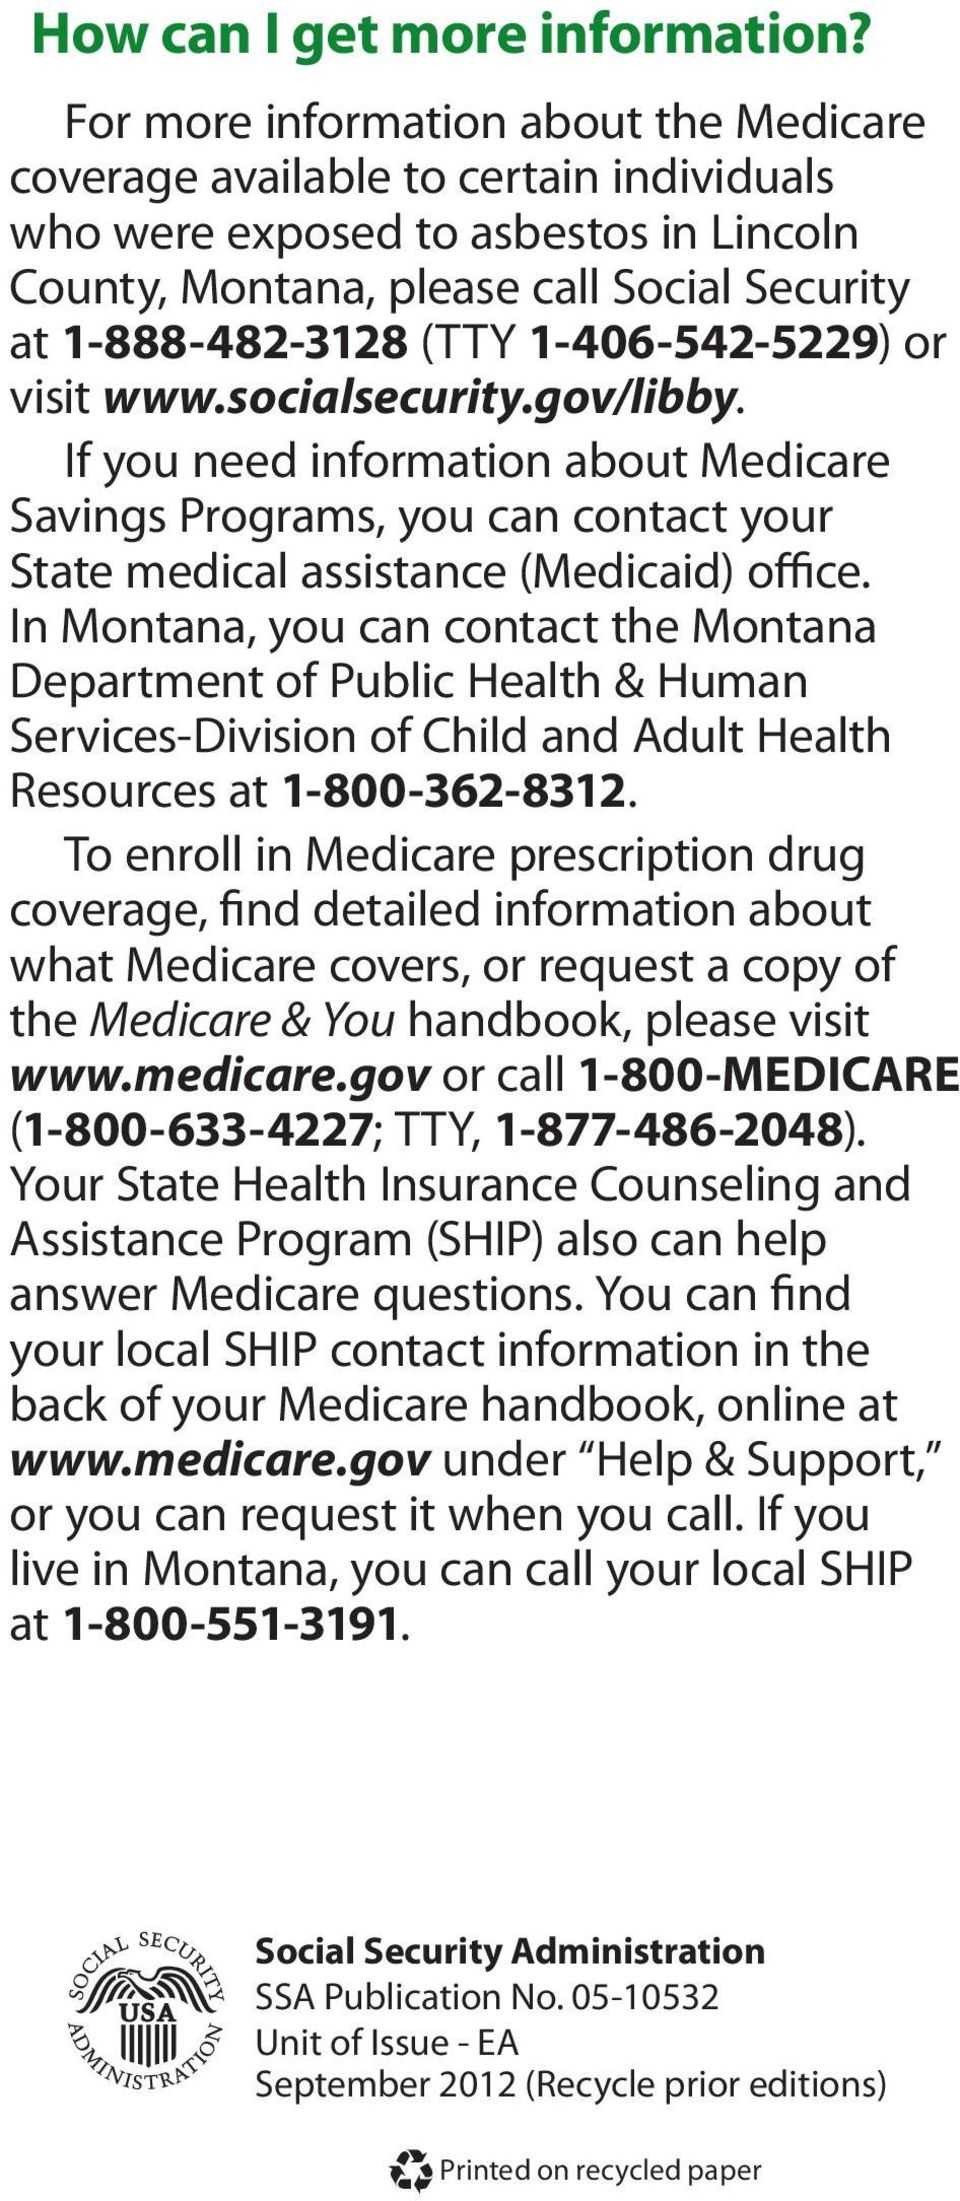 1-406-542-5229) or visit www.socialsecurity.gov/libby. If you need information about Medicare Savings Programs, you can contact your State medical assistance (Medicaid) office.